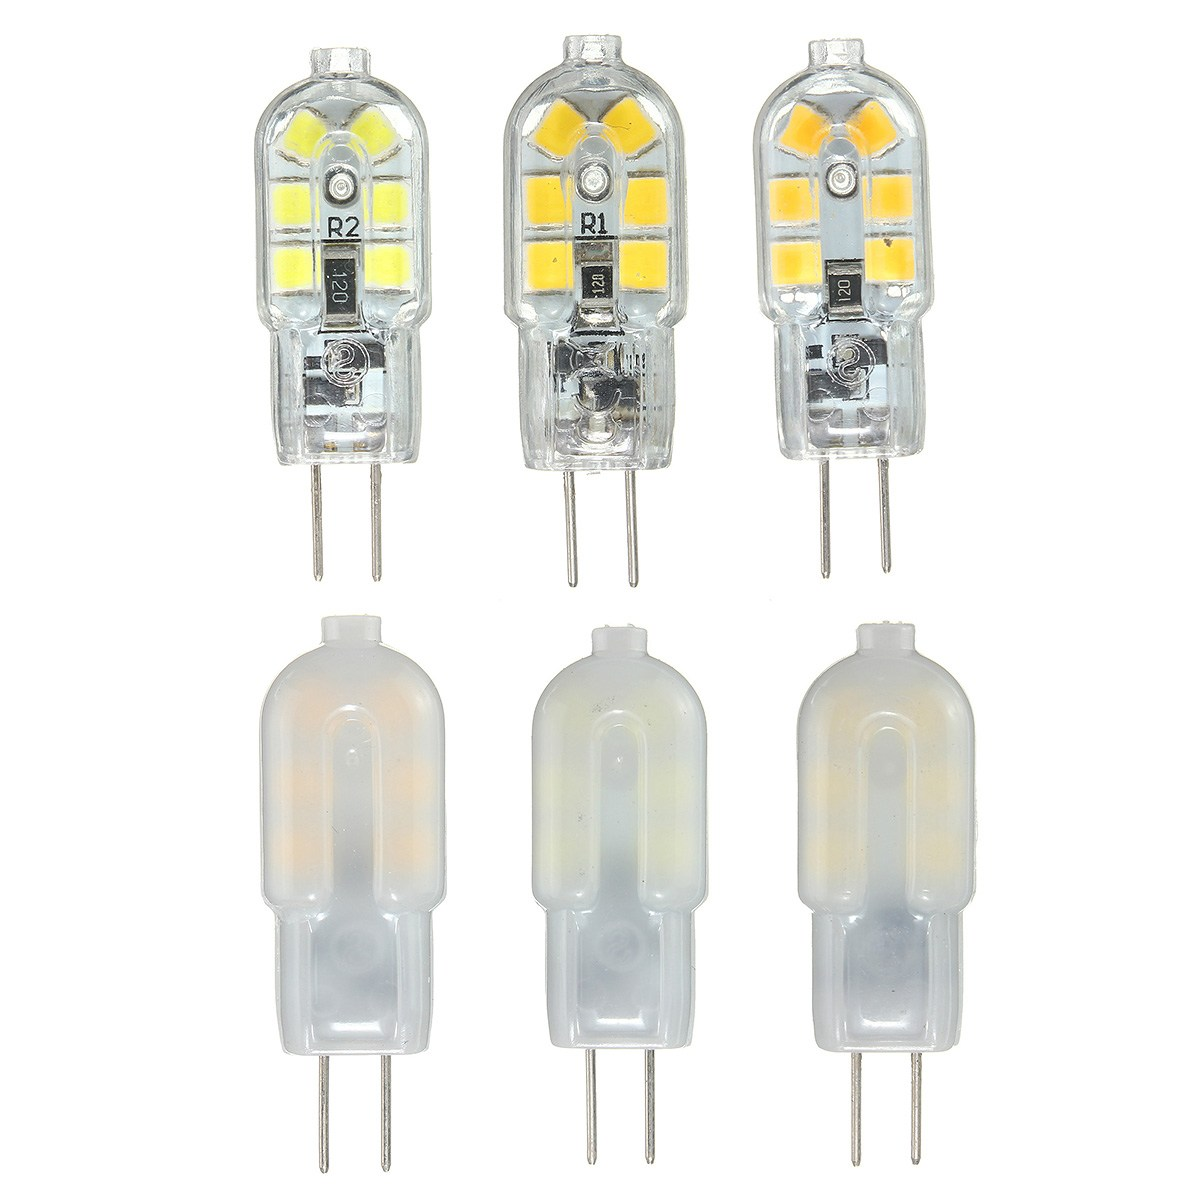 Smuxi 10PCS G4 LED Lamp 3W G4 LED Bulb 12V Mini G4 LED Light 360 Beam Angle Replace Halogen Lamp Chandelier Lights